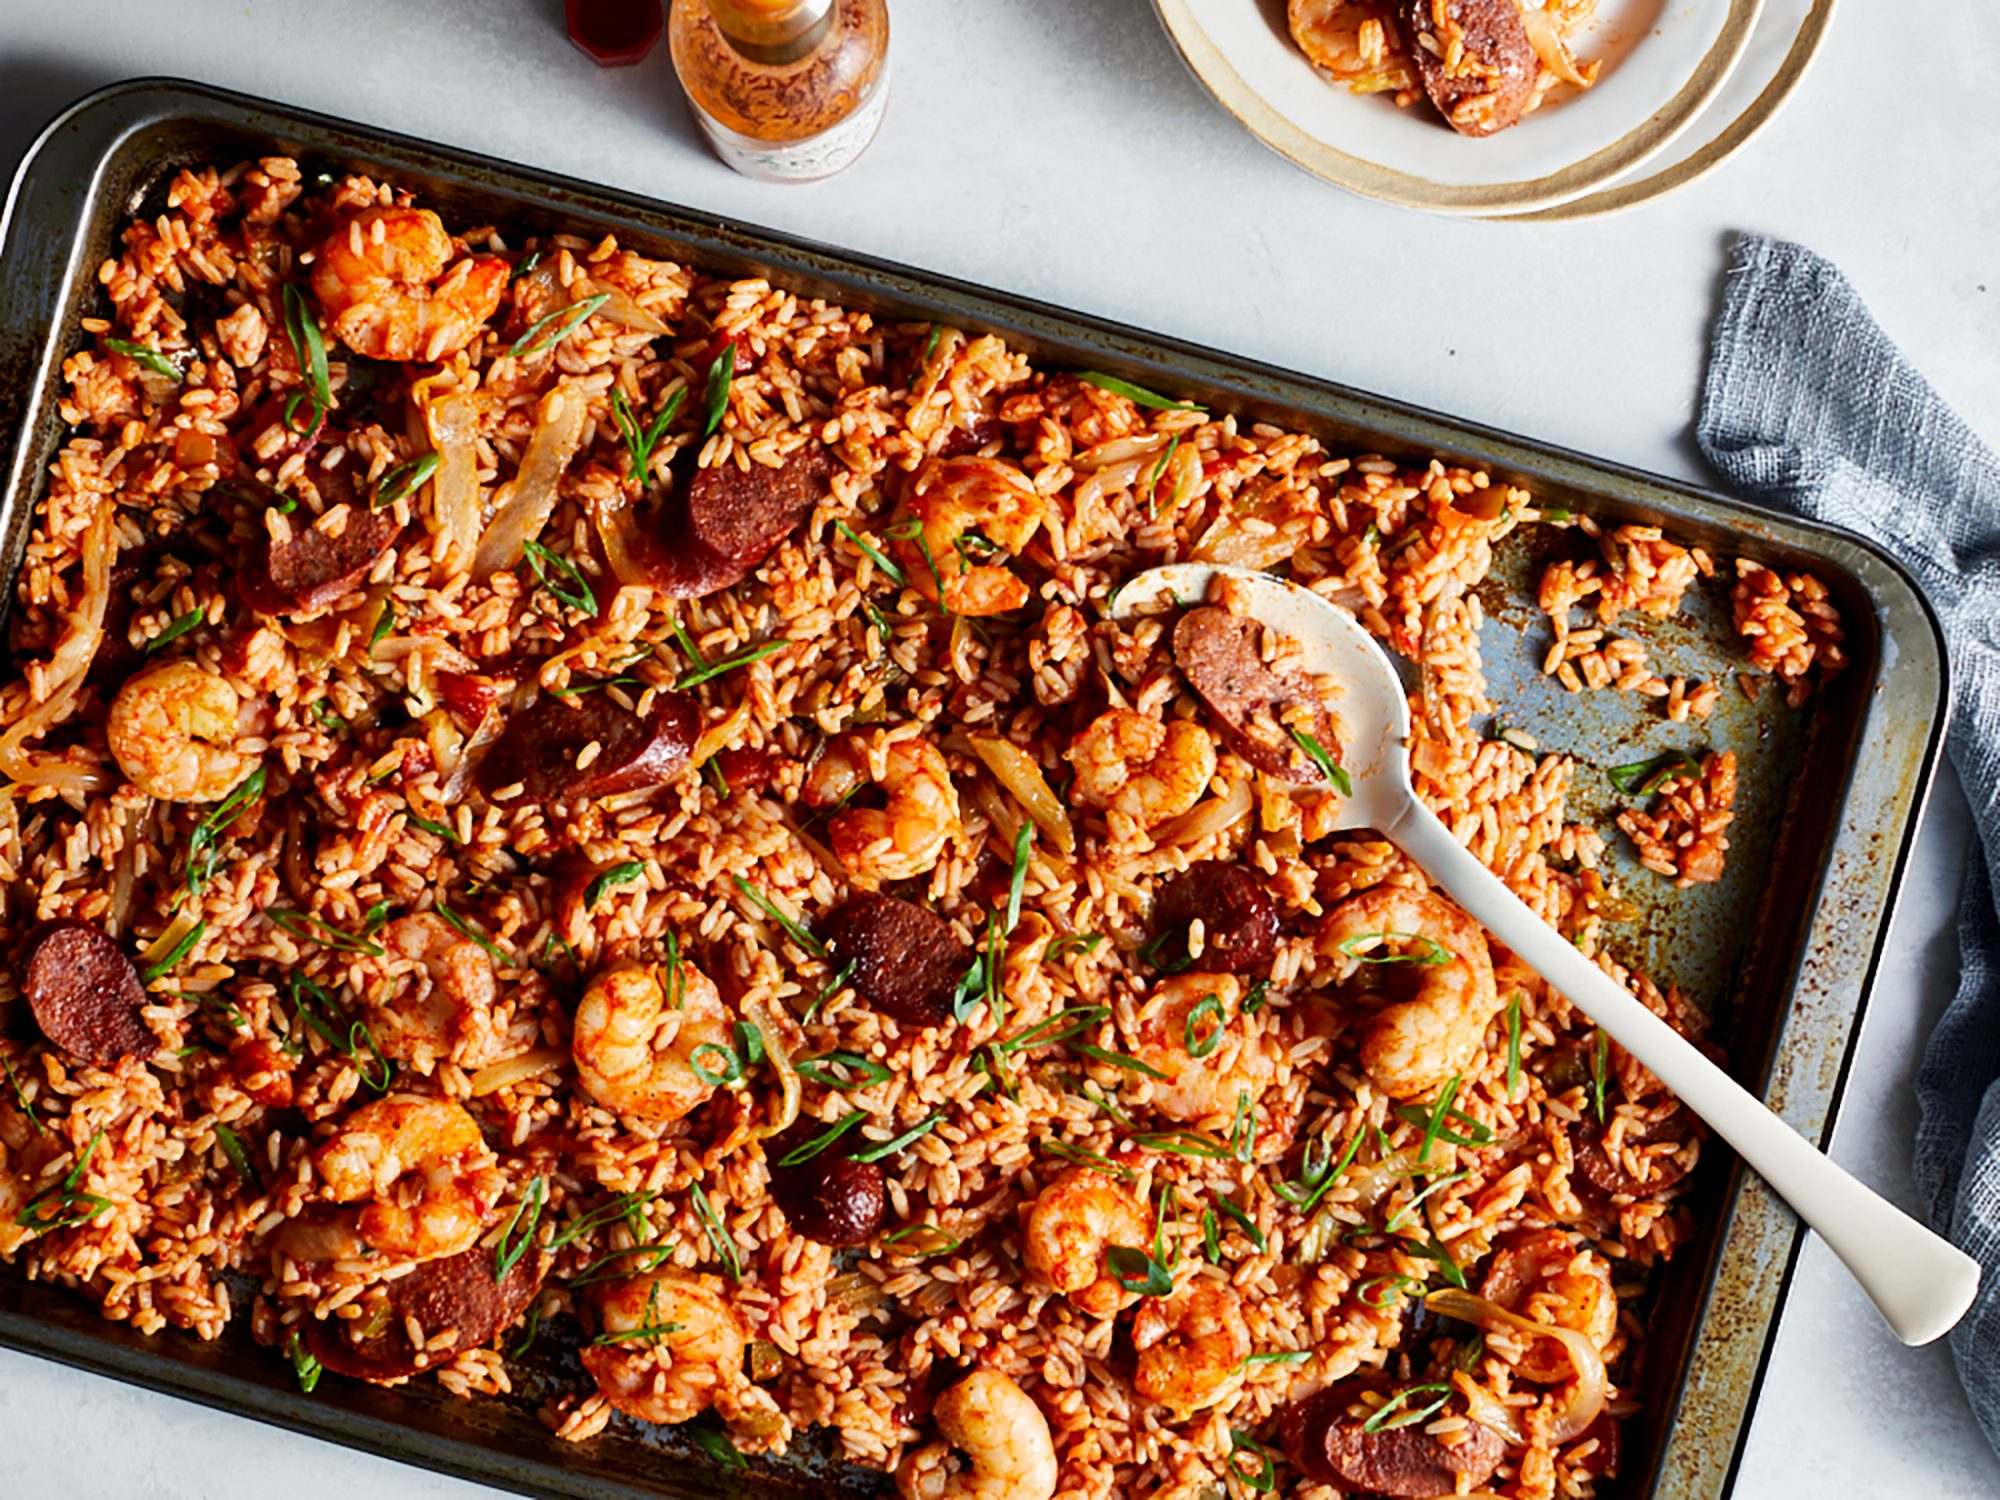 Sheet-Pan Shrimp and Sausage Jambalaya